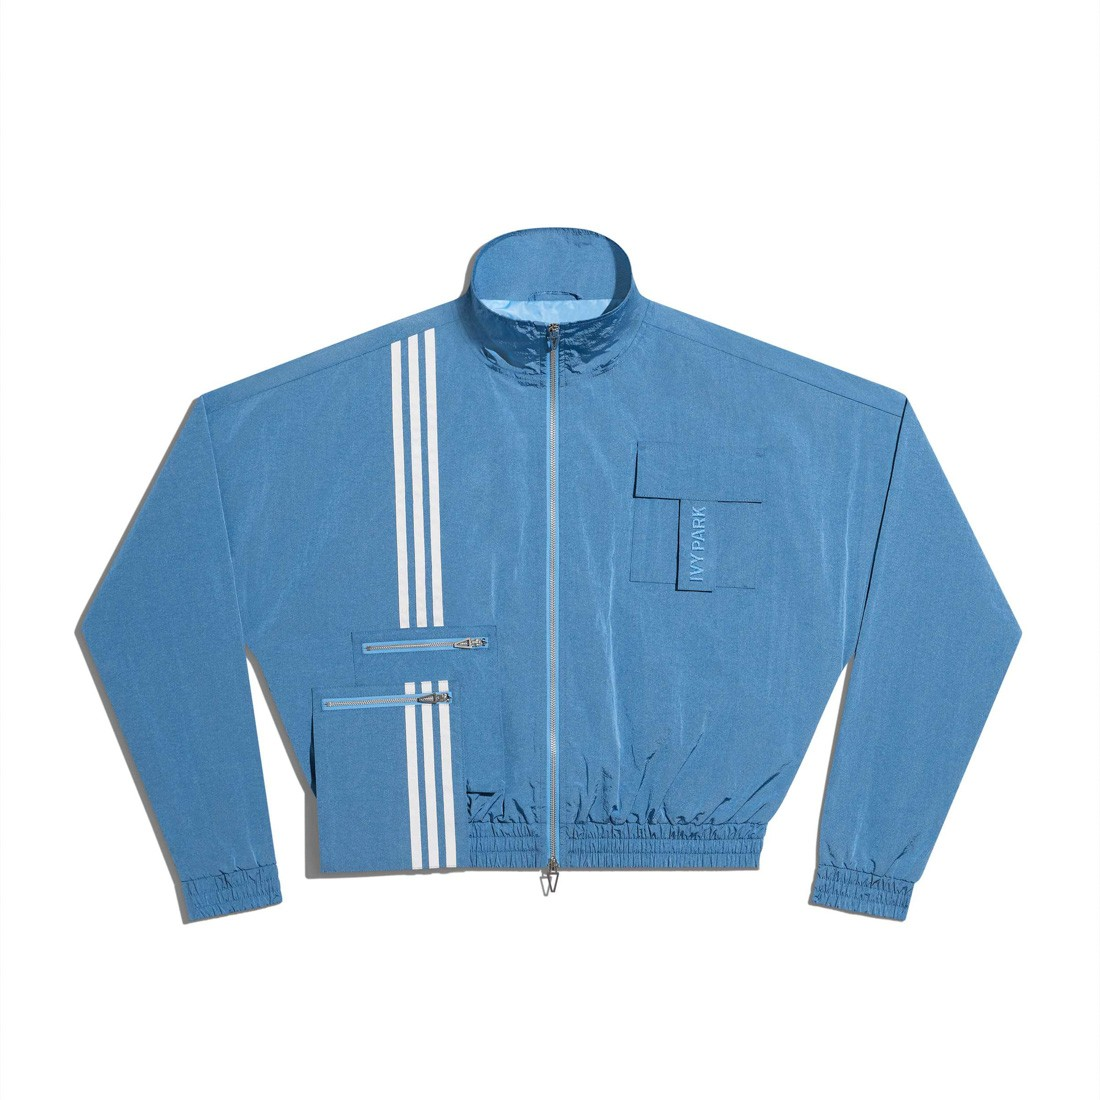 Adidas x Ivy Park Men Nylon Track Jacket (blue / light blue)